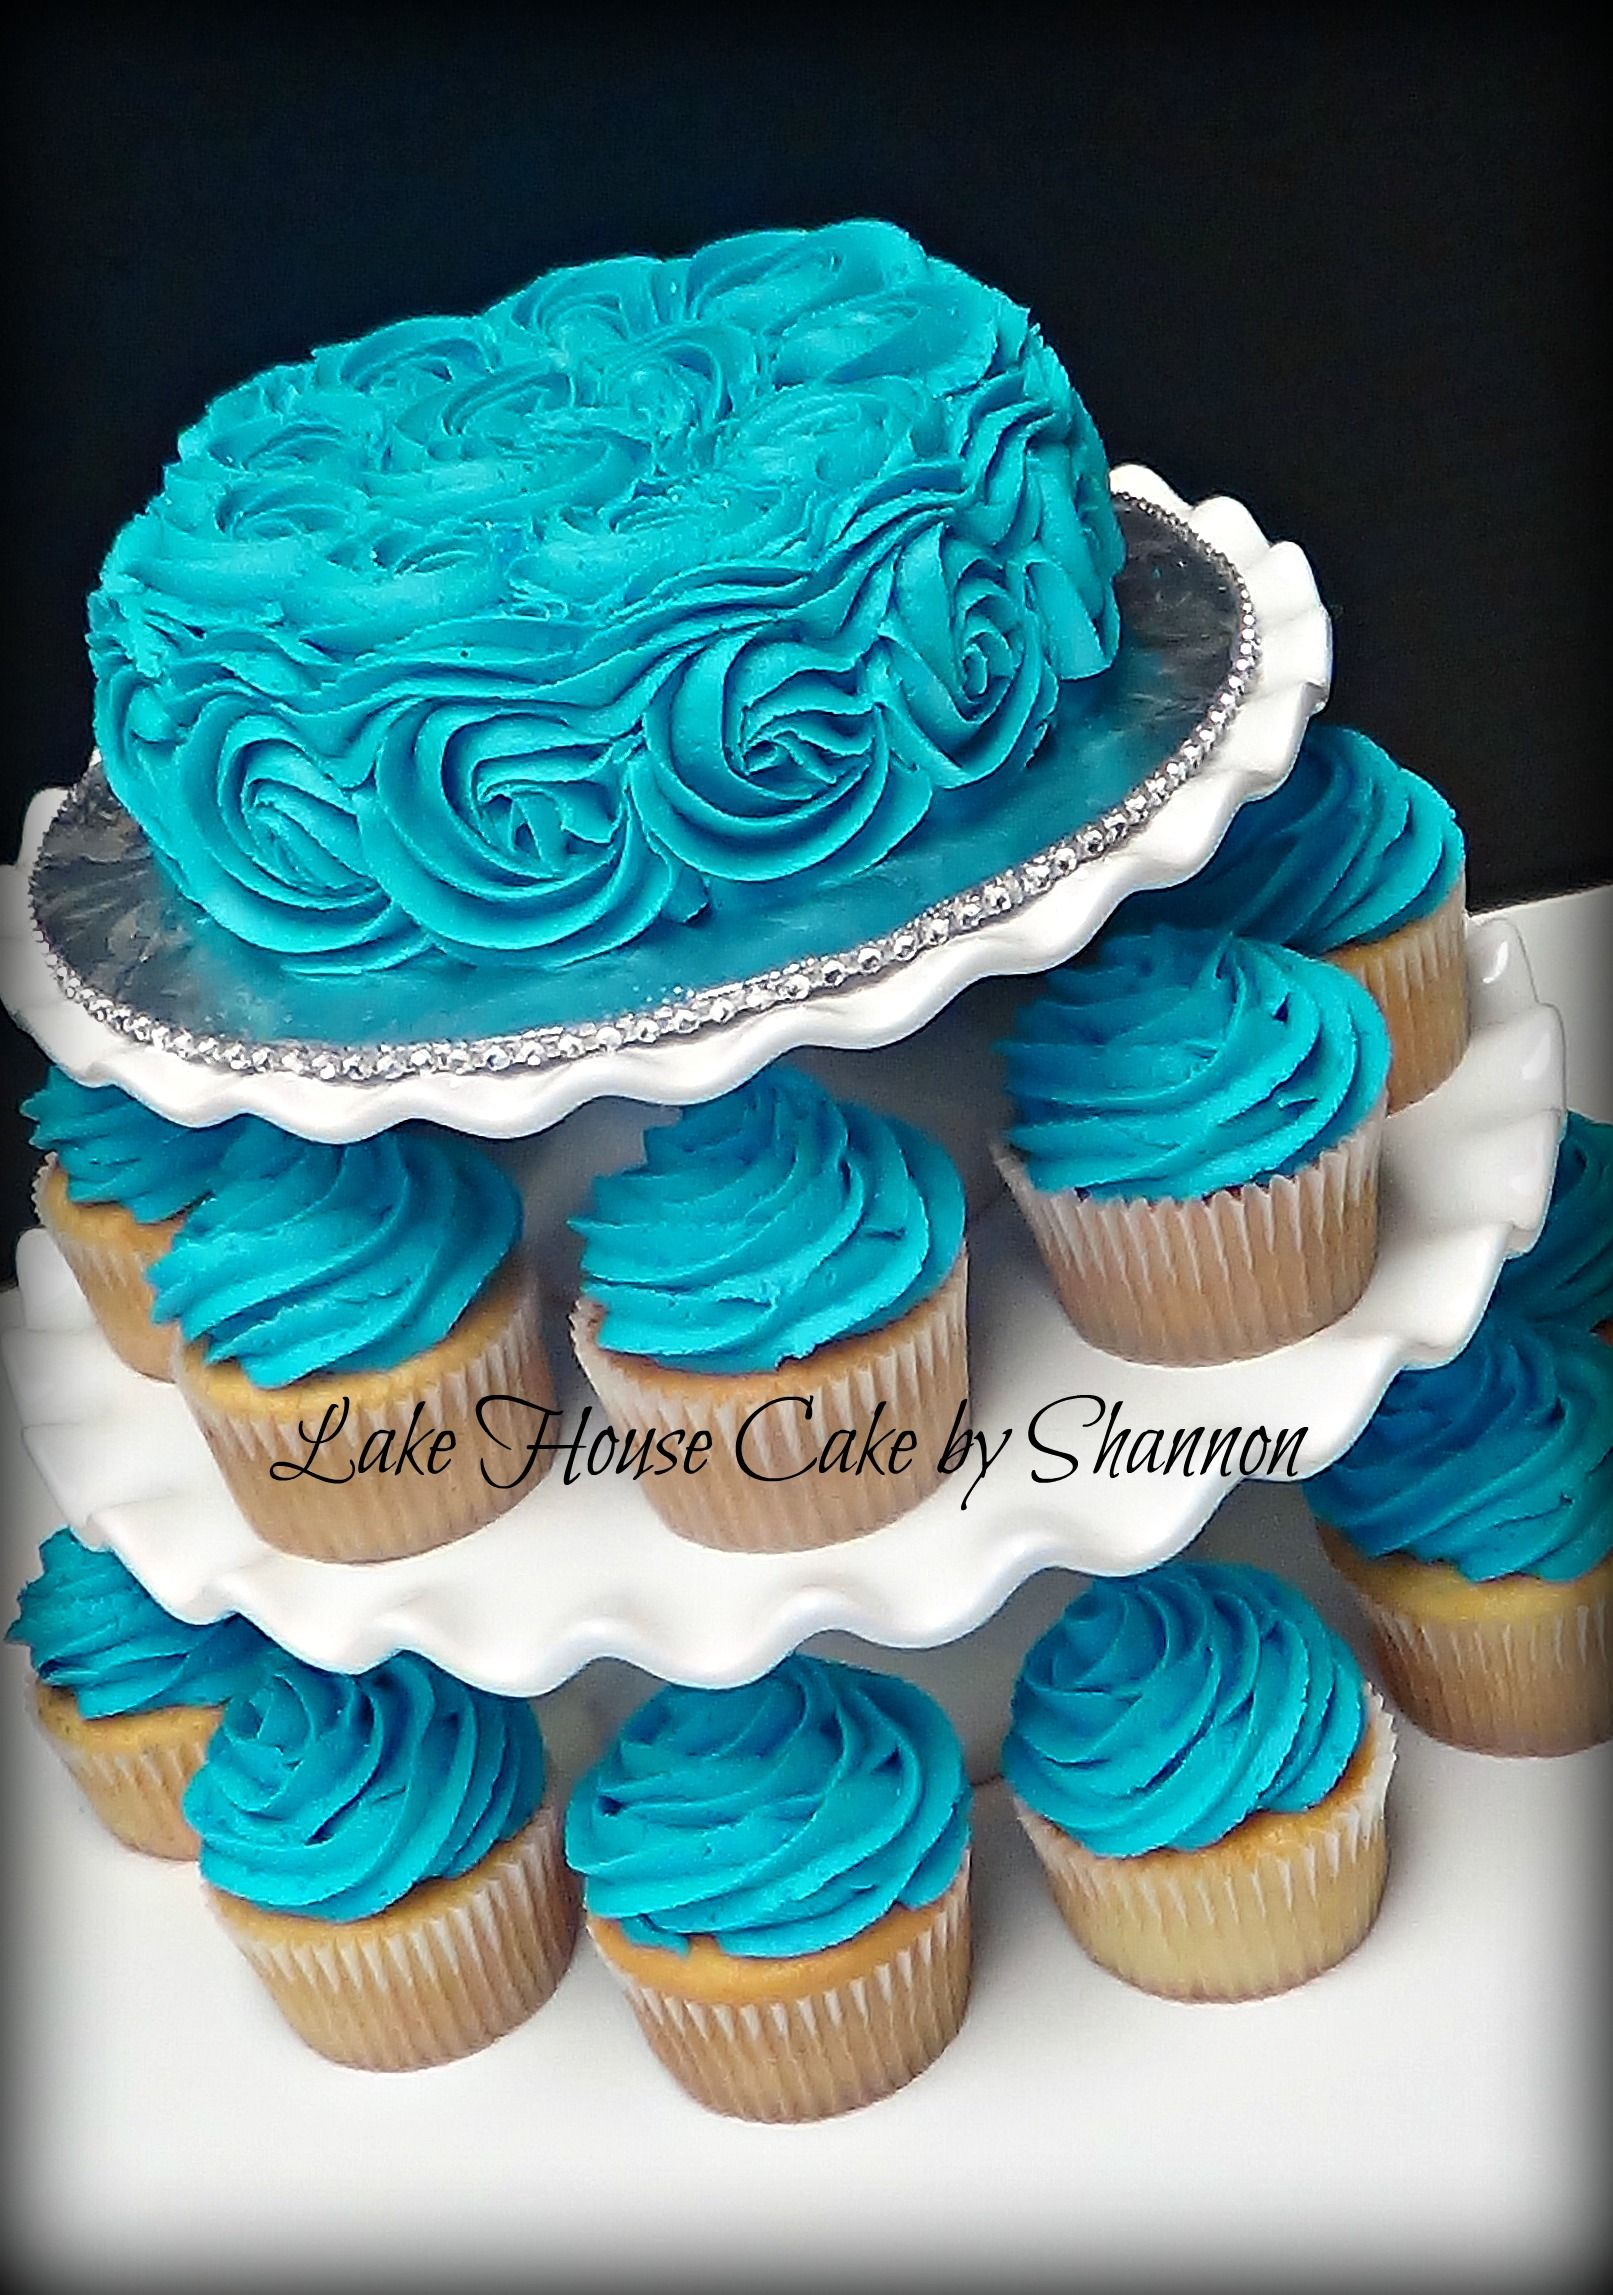 Sky Blue Cake Images : Cupcake Stand Turquoise Teal Sky Blue Rosettes Bling Lake ...